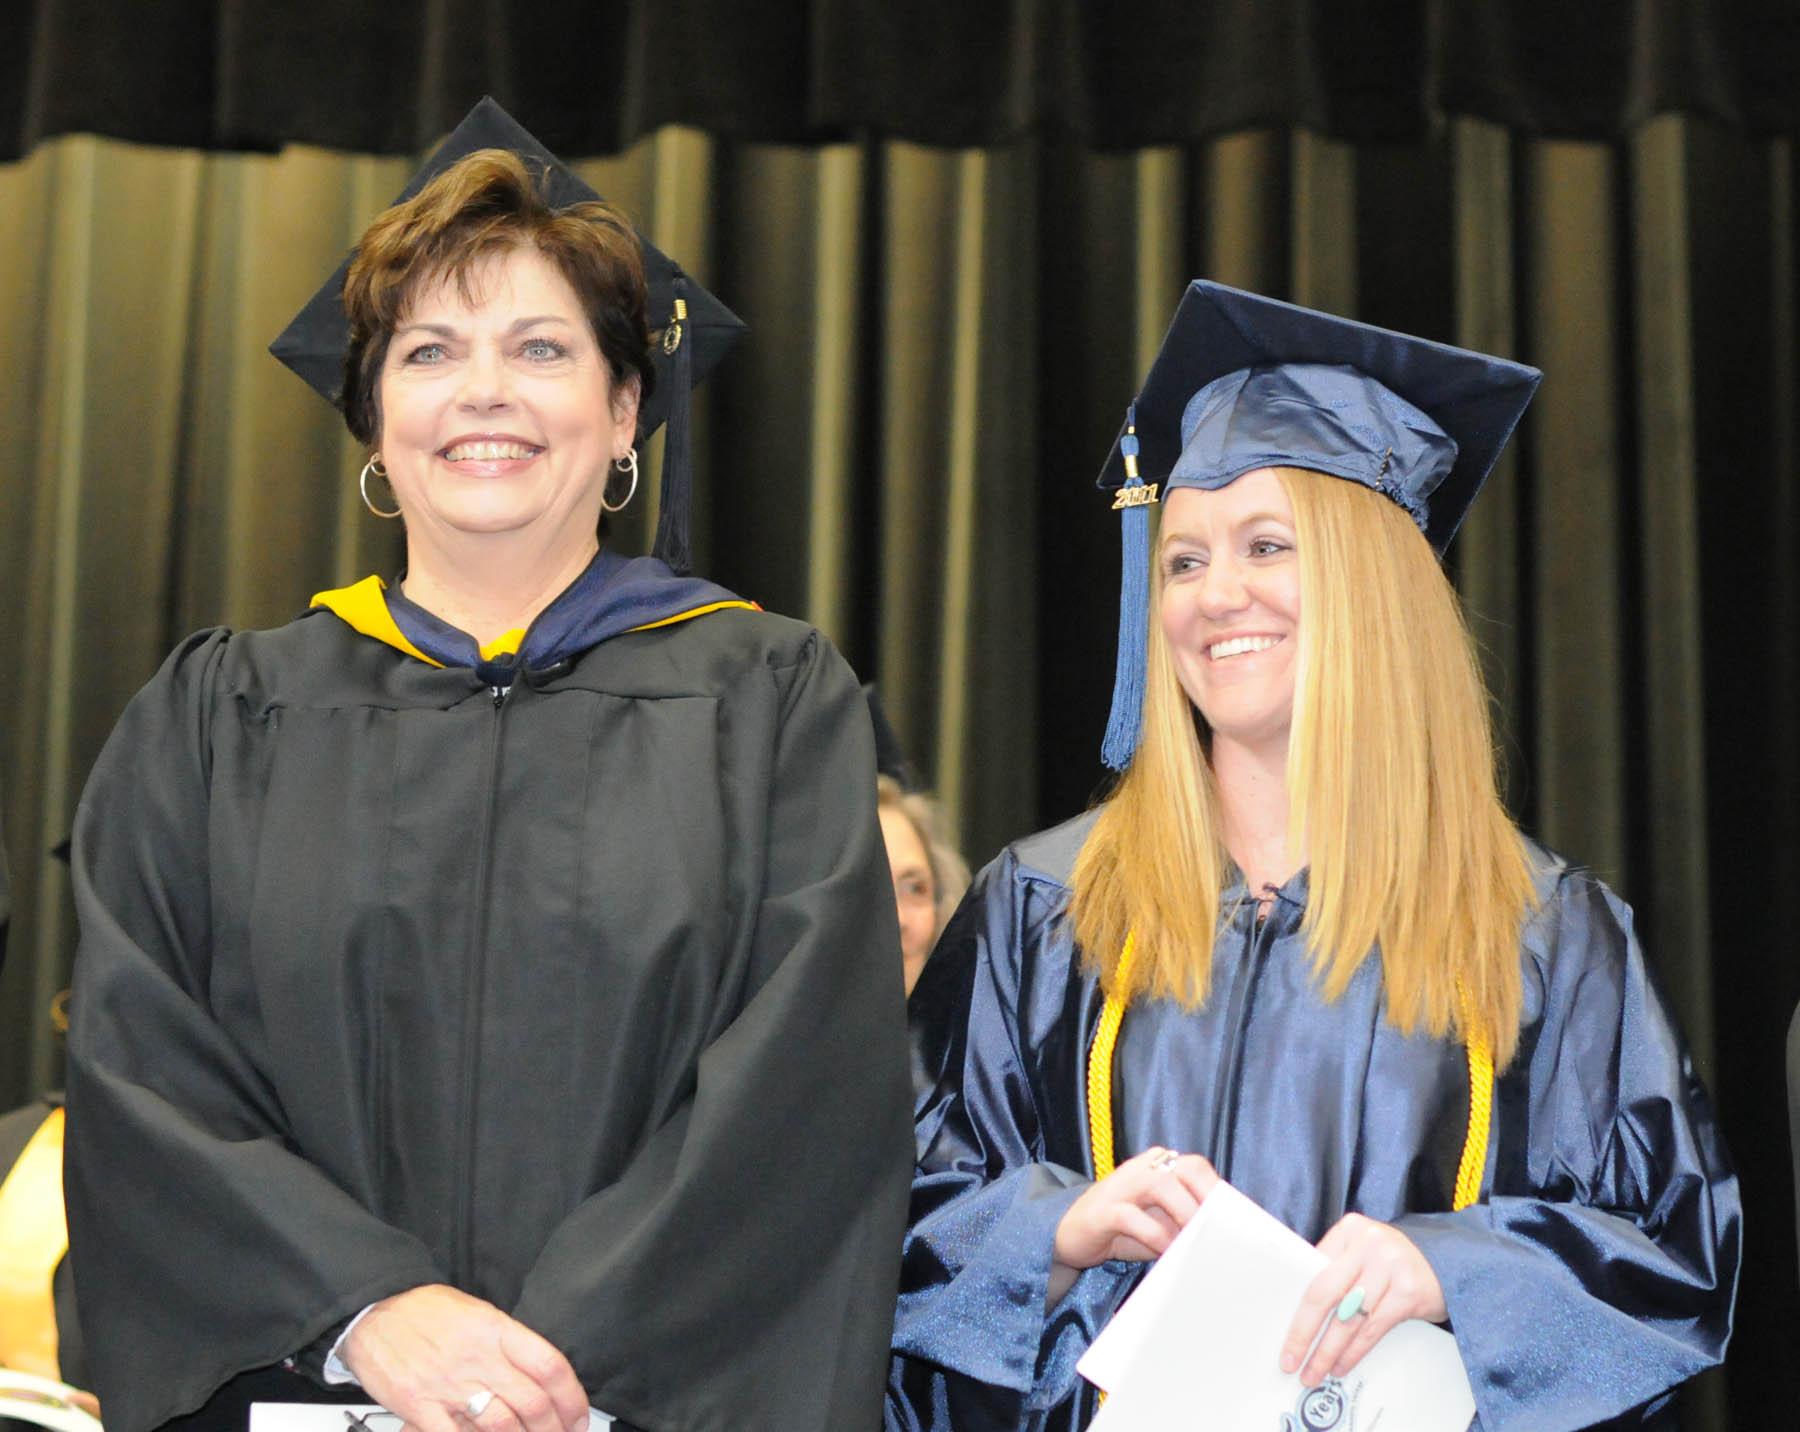 Click to enlarge,  Sara Lambert (left) Chatham County College and Career Readiness coordinator for Central Carolina Community College, and Anna Umberger, of Chatham County, are all smiles as they await the beginning of the college's Adult High School and General Educational Development programs graduation Thursday, Jan. 19, in the Dennis A. Wicker Civic Center. Umberger, an honors graduate and one of the commencement speakers, said she served a five-year mission in Honduras, where she learned to appreciate the educational opportunities available to her in the United States.